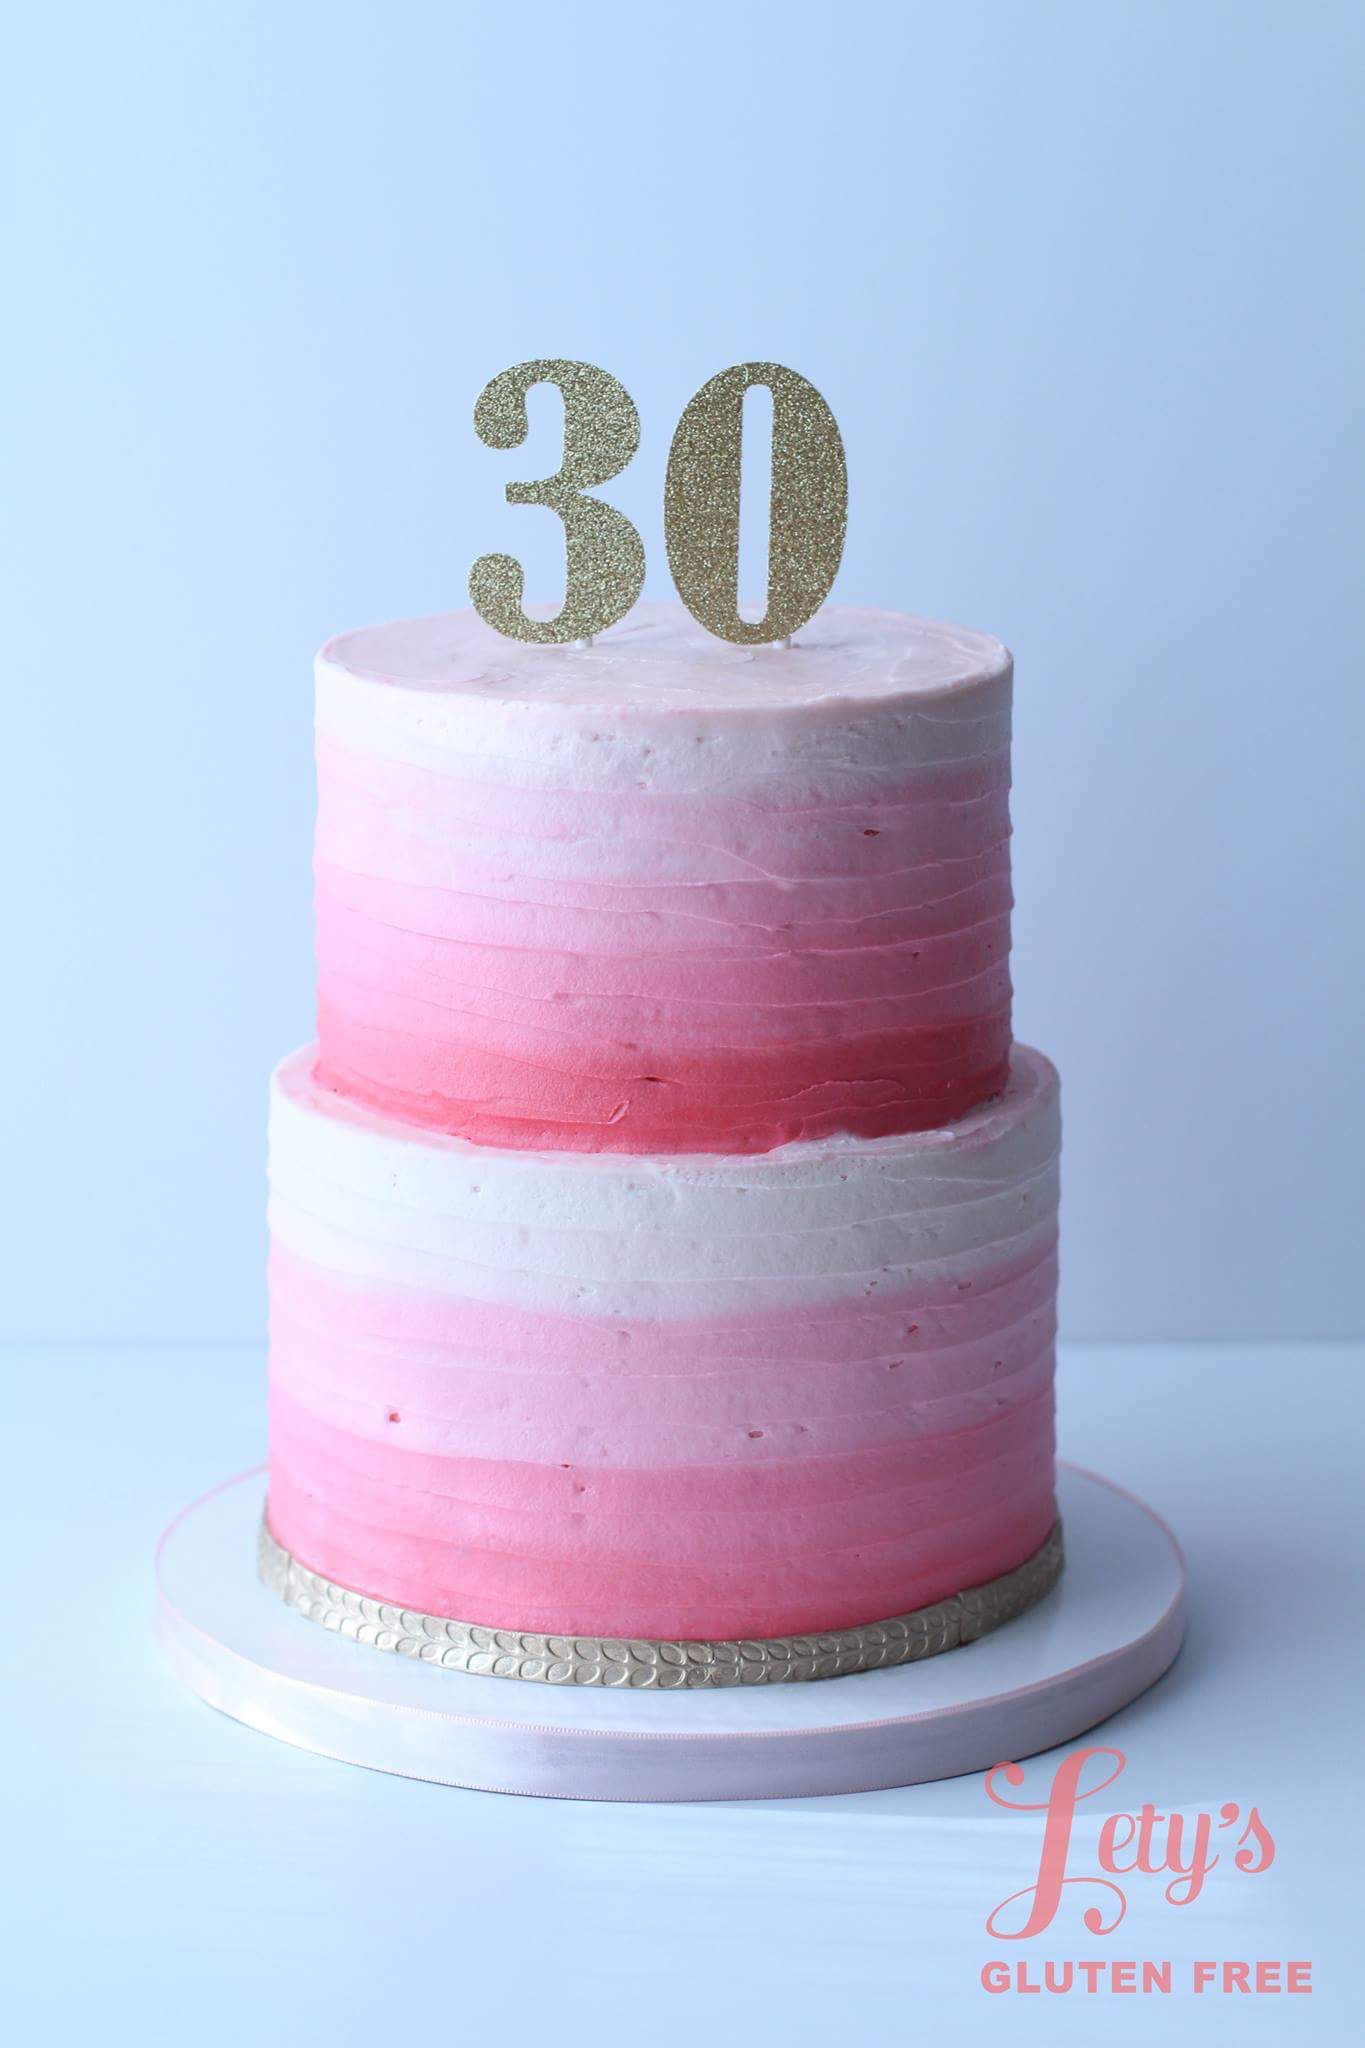 30th Birthday Celebration Letys Gluten Free Custom Cake And Cupcakes In Houston Texas